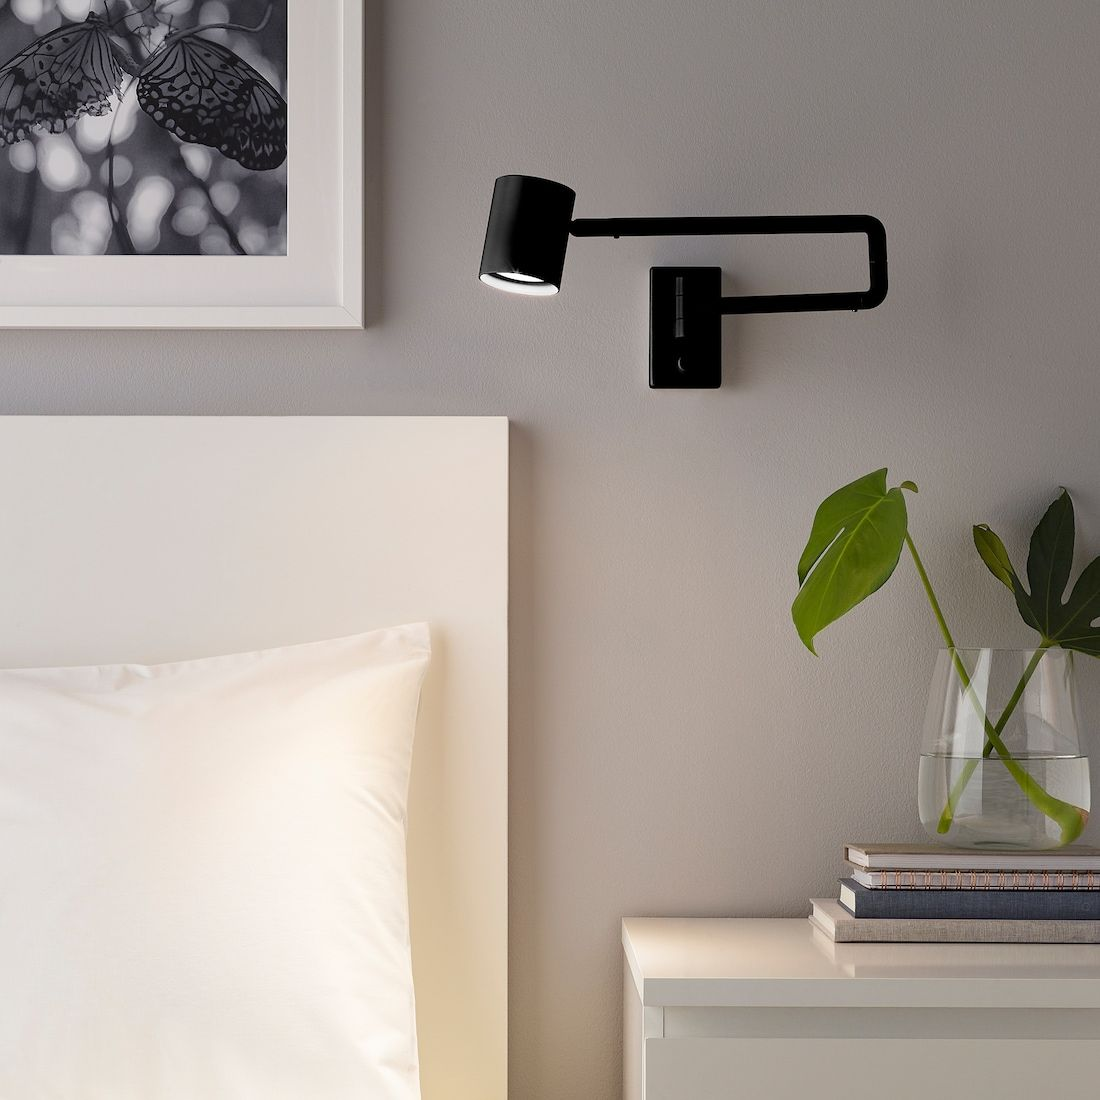 NymÅne Anthracite Wall Lamp W Swing Arm Wired In Ikea Wandleuchte Ikea Lampen Schlafzimmer Wandlampe